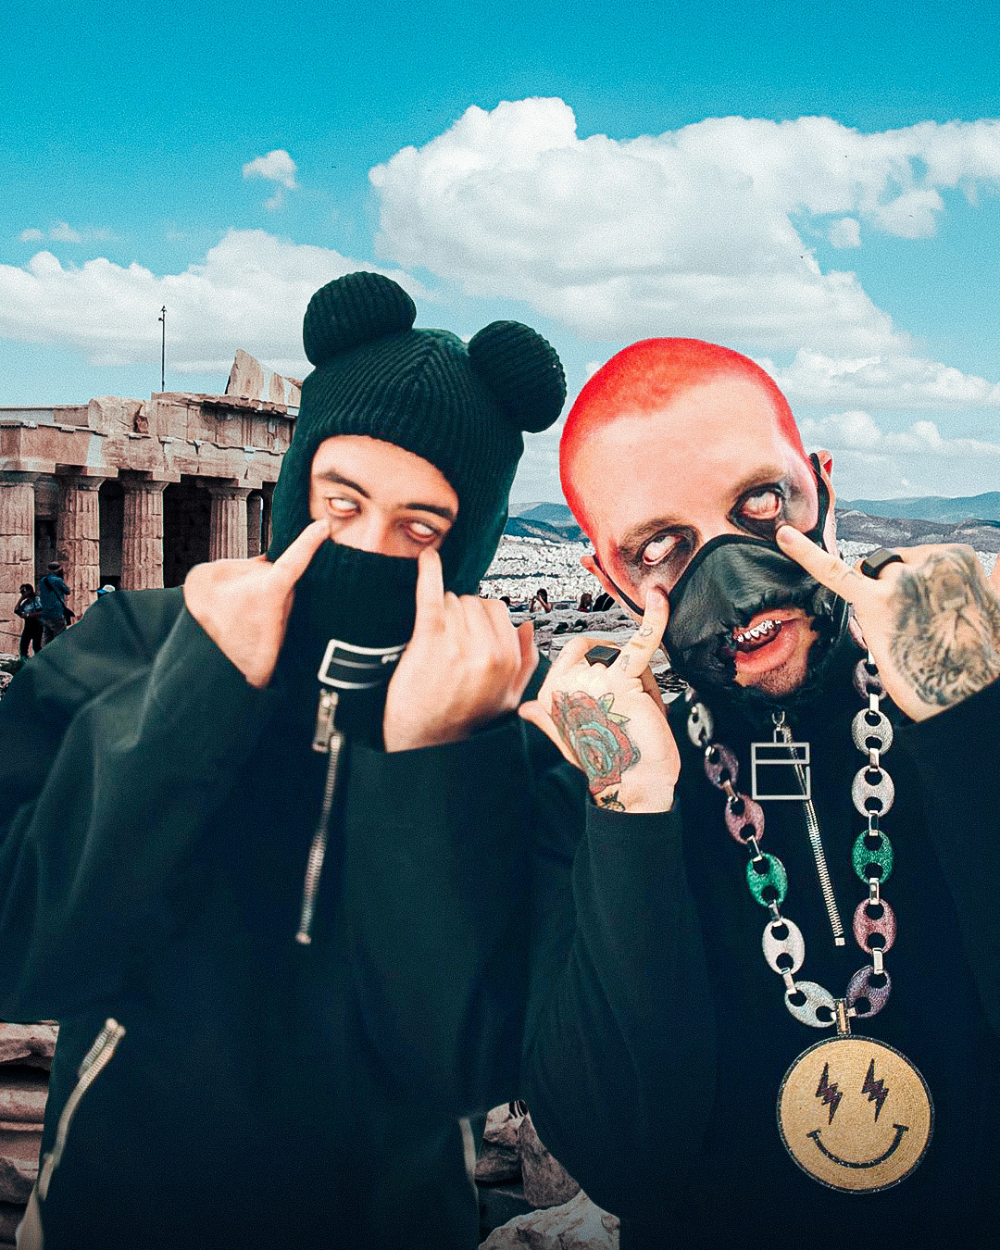 Oasis Bad Bunny J Balvin On Behance In 2020 Black Aesthetic Bunny Bunny Outfit